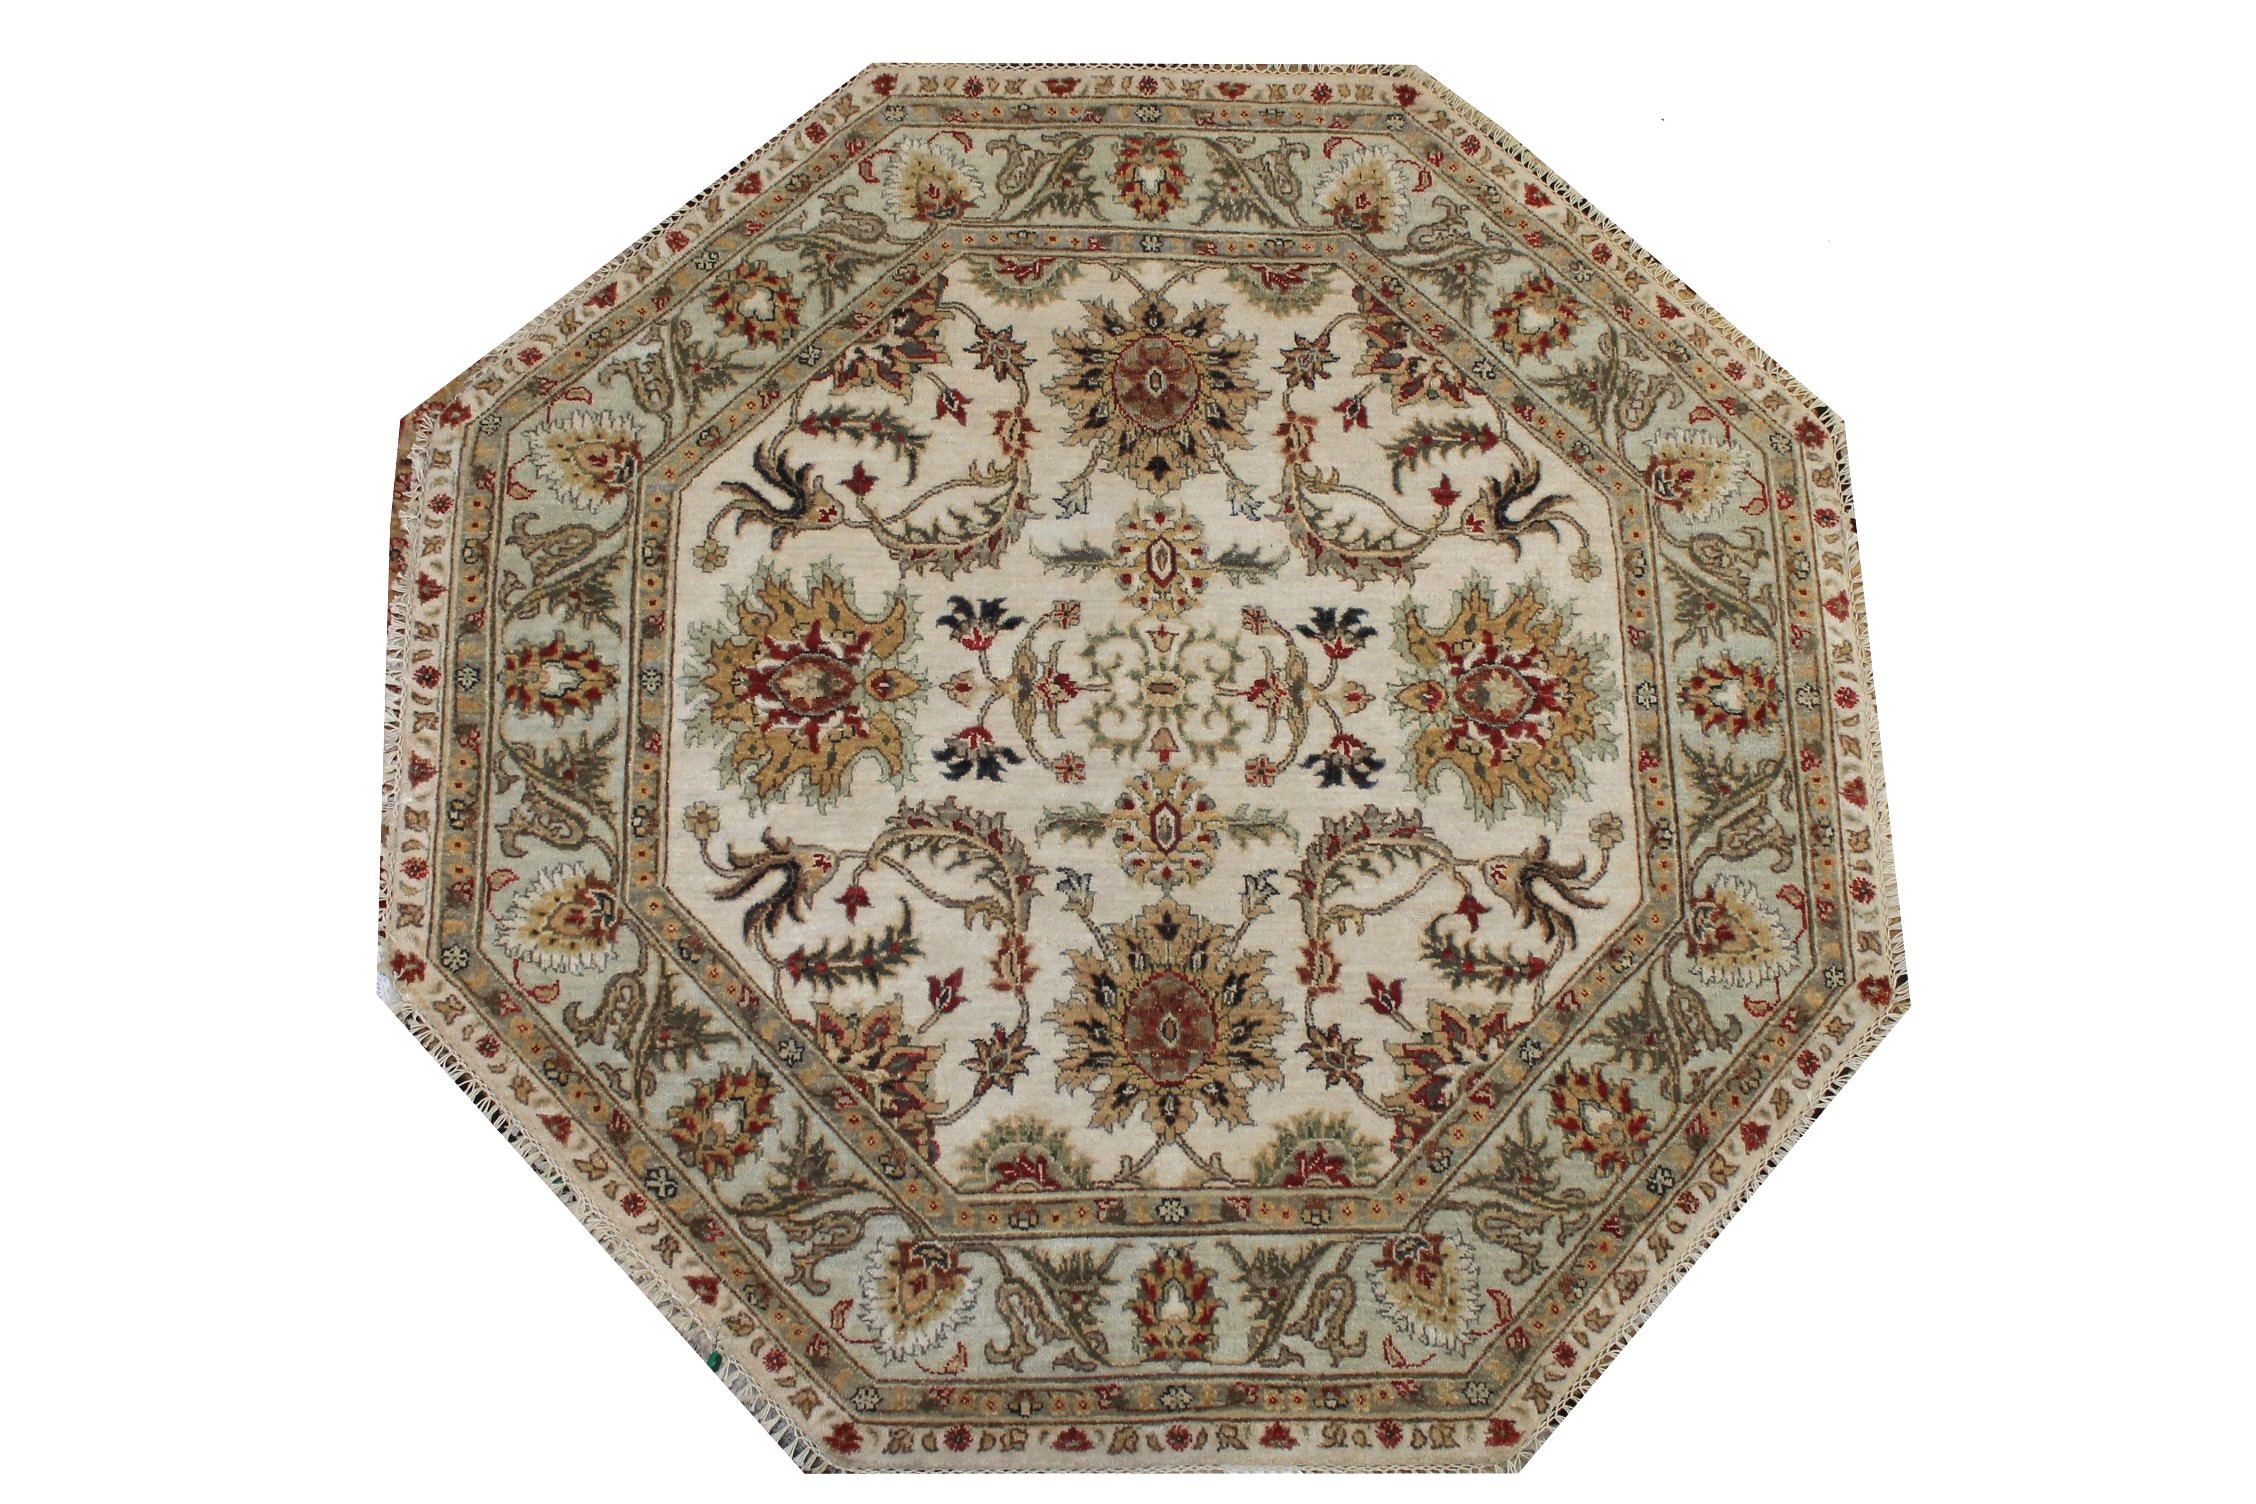 5 ft. Round & Square Traditional Hand Knotted Wool Area Rug - MR024252